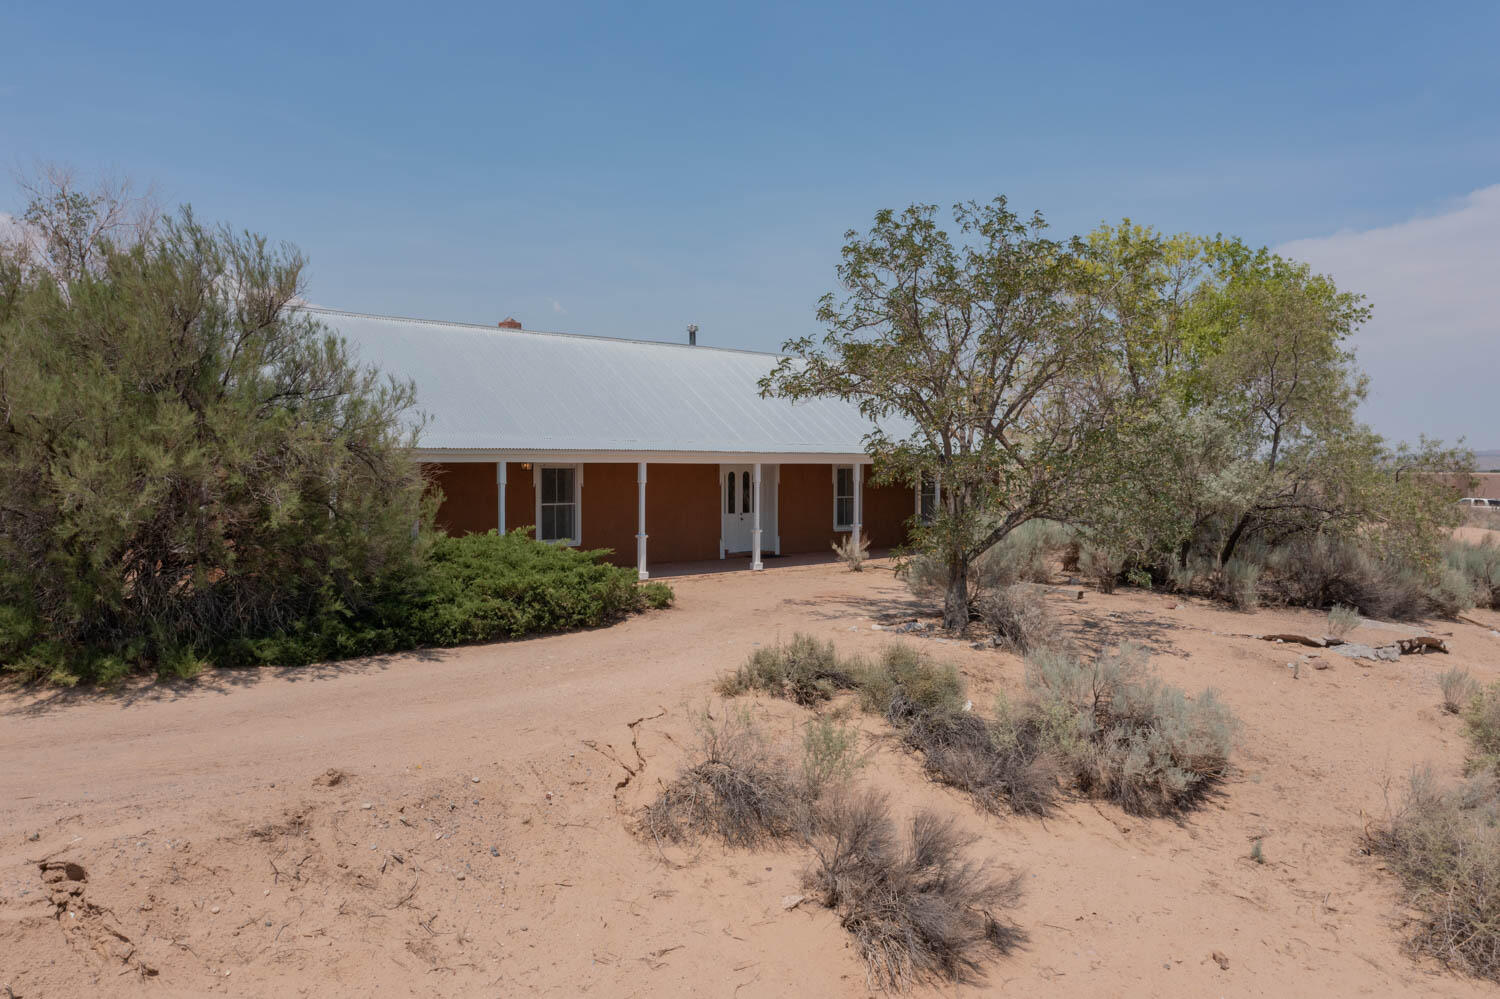 PRICE REDUCED!   Don't miss the breathtaking views from this gorgeous unique Northern New Mexico style home built by Corrales builder Pete Smith.  This adobe home is nestled on 3.5 acres at the end of a private road.  Enjoy beautiful brick floors, huge bedrooms, 3 Kiva fireplaces, and a front portal that runs the length of the home on which to sit and take in the incredible views.  So much charm and plenty of privacy.Please note that most everything in this home is original, which adds to the charm, however, a buyer may wish to update. One of the furnaces was replaced within the last year or so, along with the well pump. New stucco and new storage room roof in 2021.  Septic tank replaced Aug 2021.